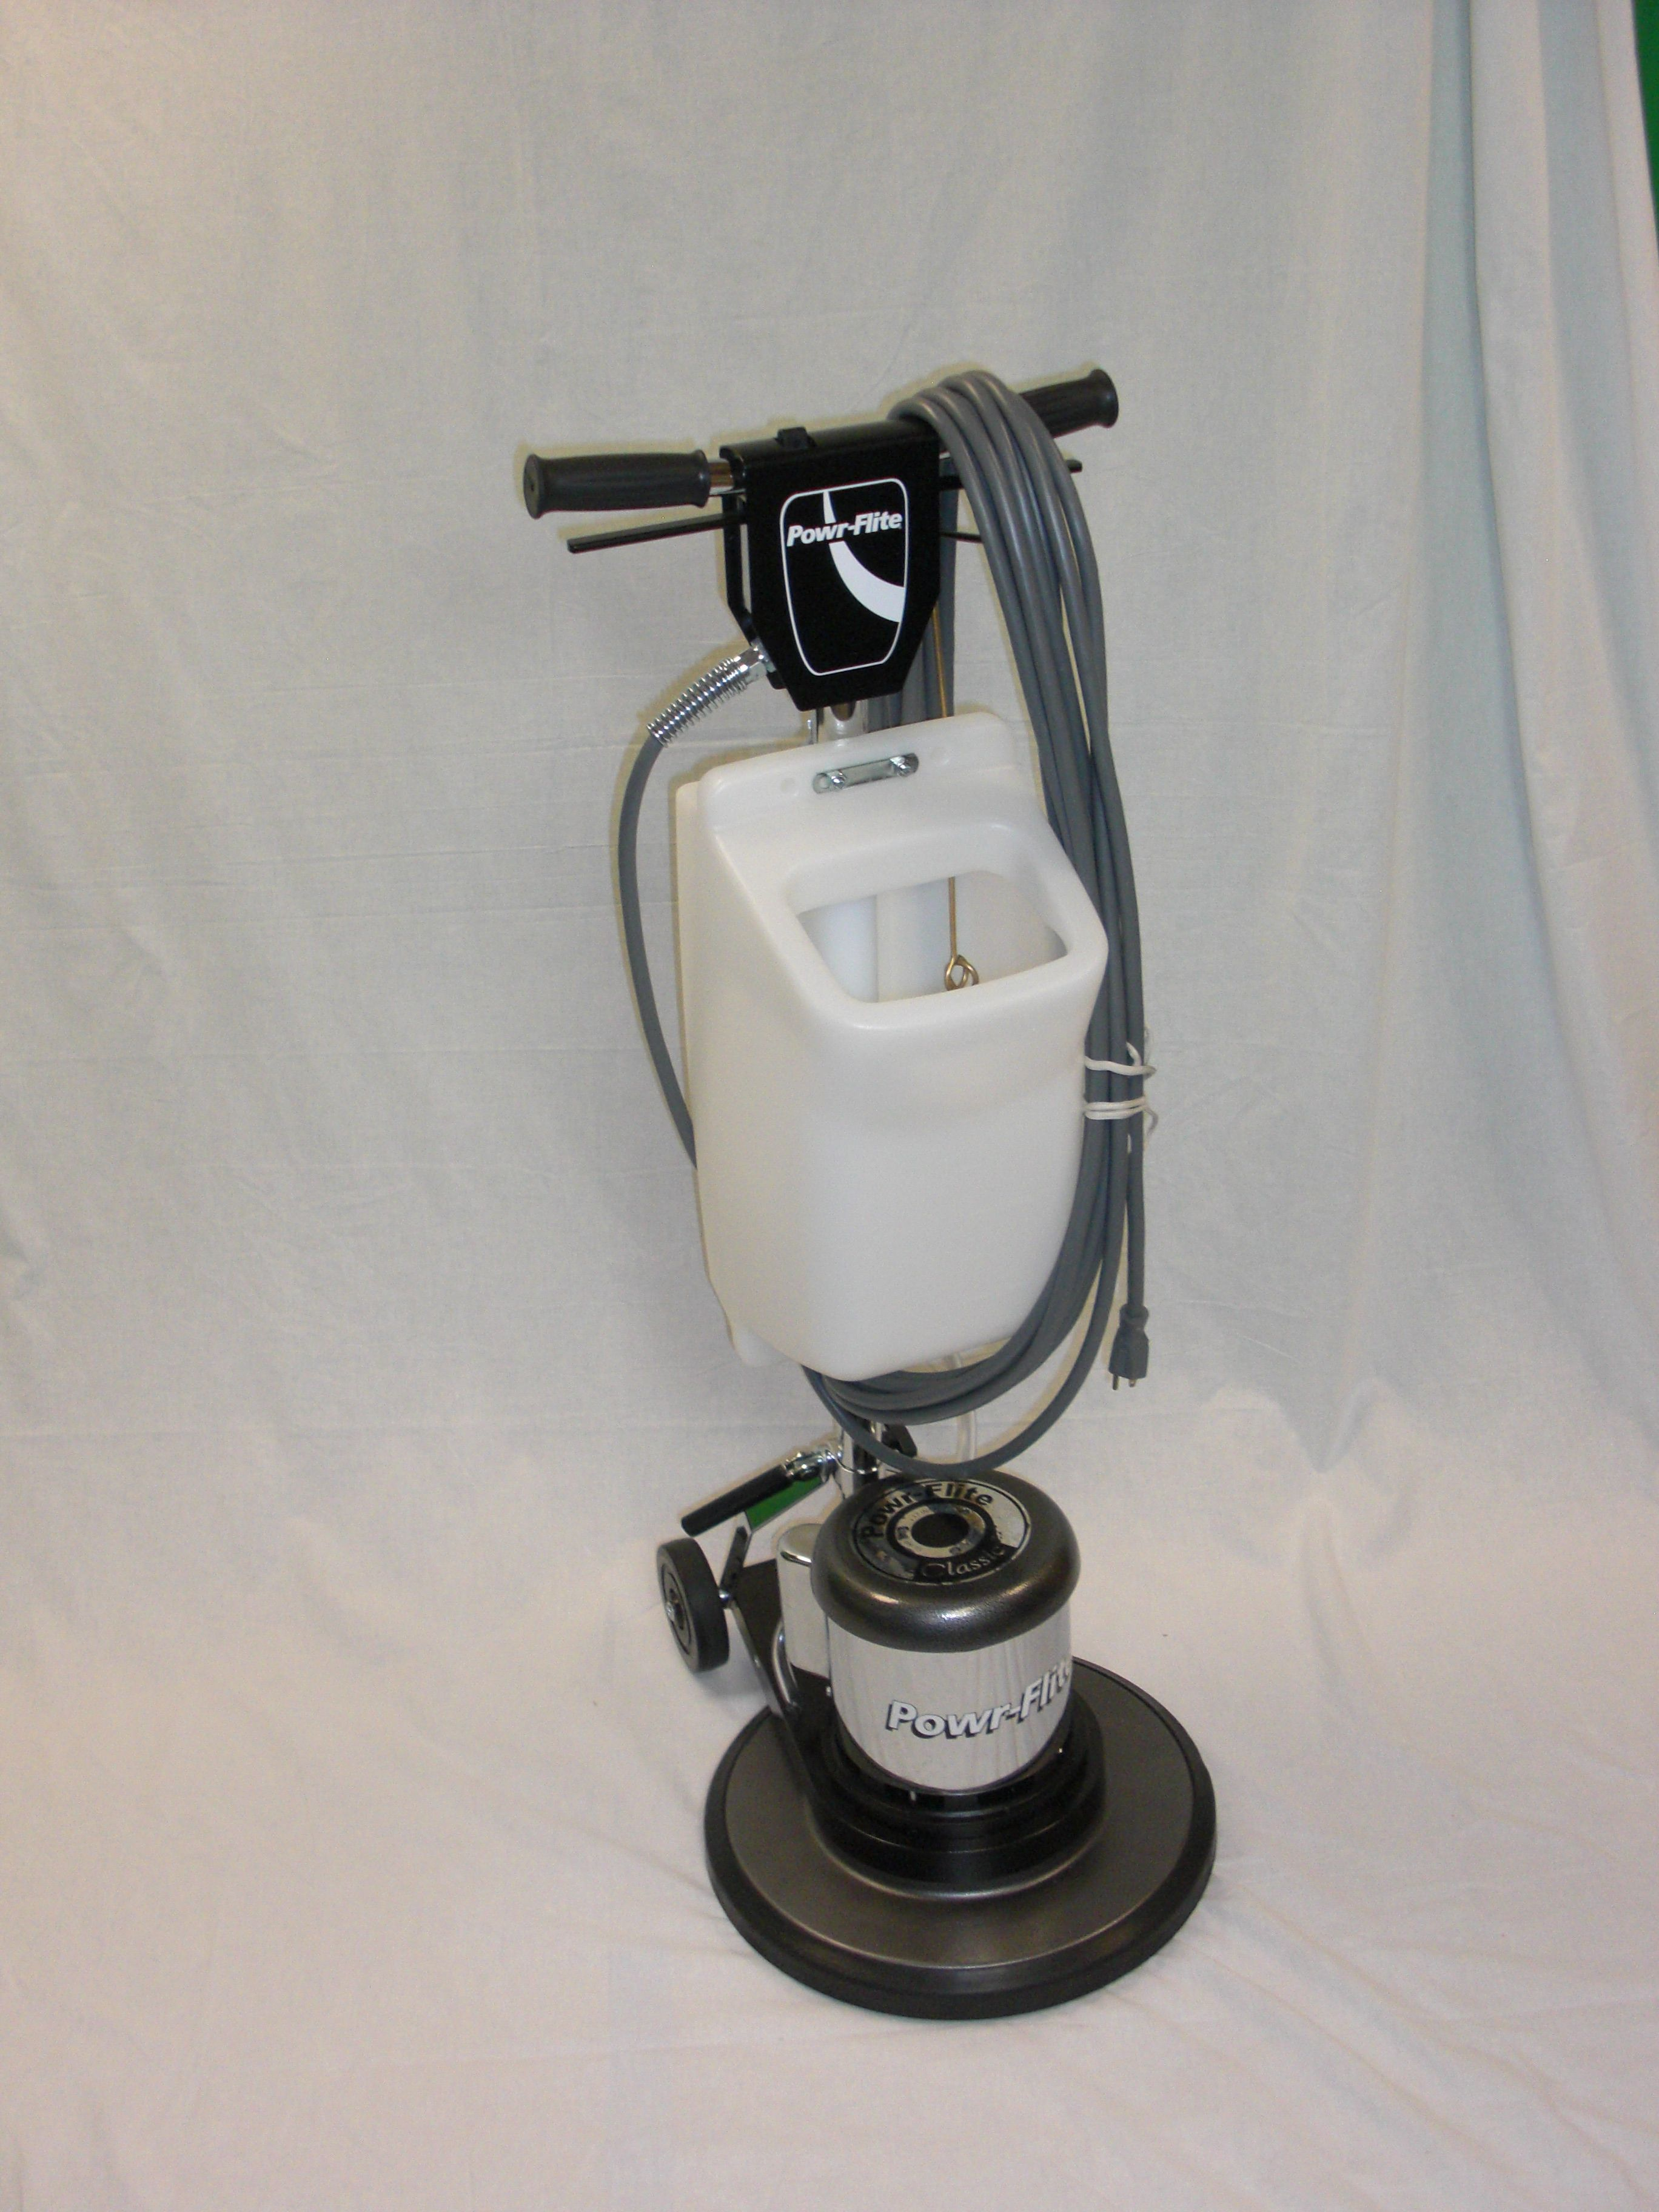 Here Is A 175 Rpm Floor Machine Also Called A Swing Machine Side By Side Buffer And Polisher Floor Machine Tools And Equipment Lamp